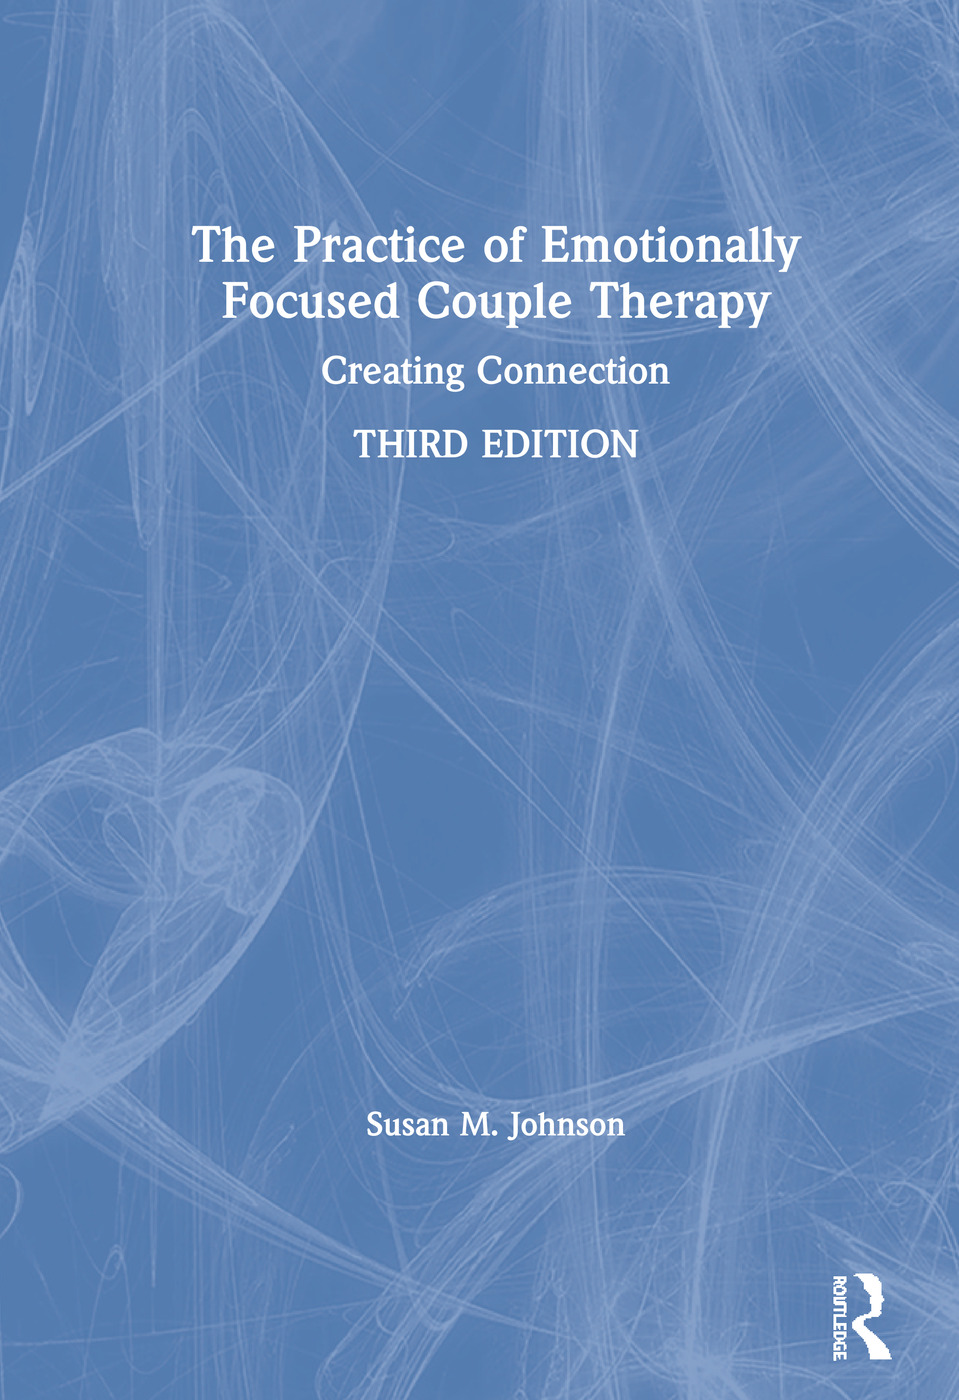 The Practice of Emotionally Focused Couple Therapy: Creating Connection book cover